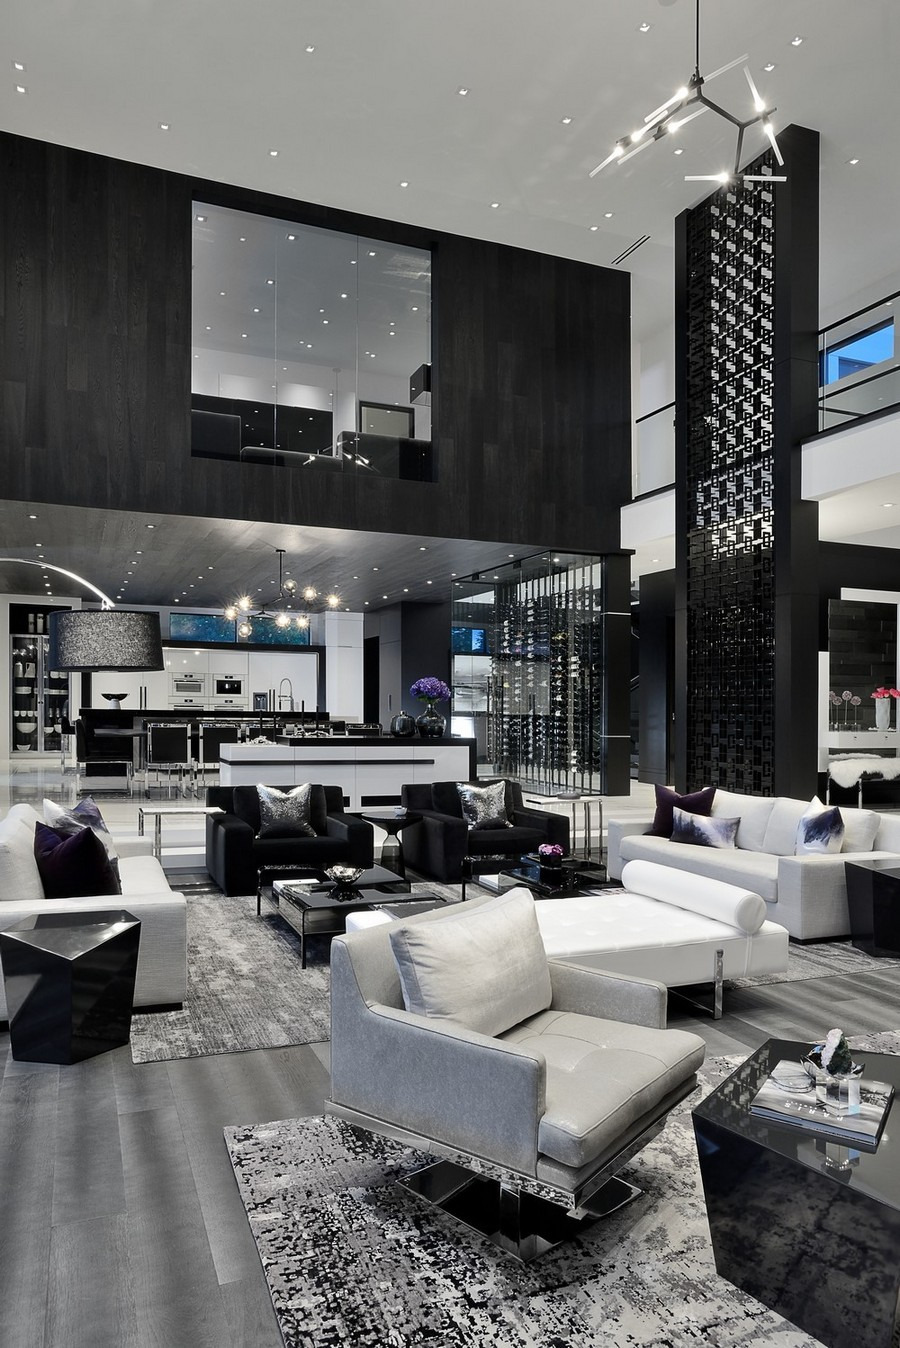 Modern Luxury House Plans and Designs Unique Be Inspired by This Modern Luxury House Design – Home and